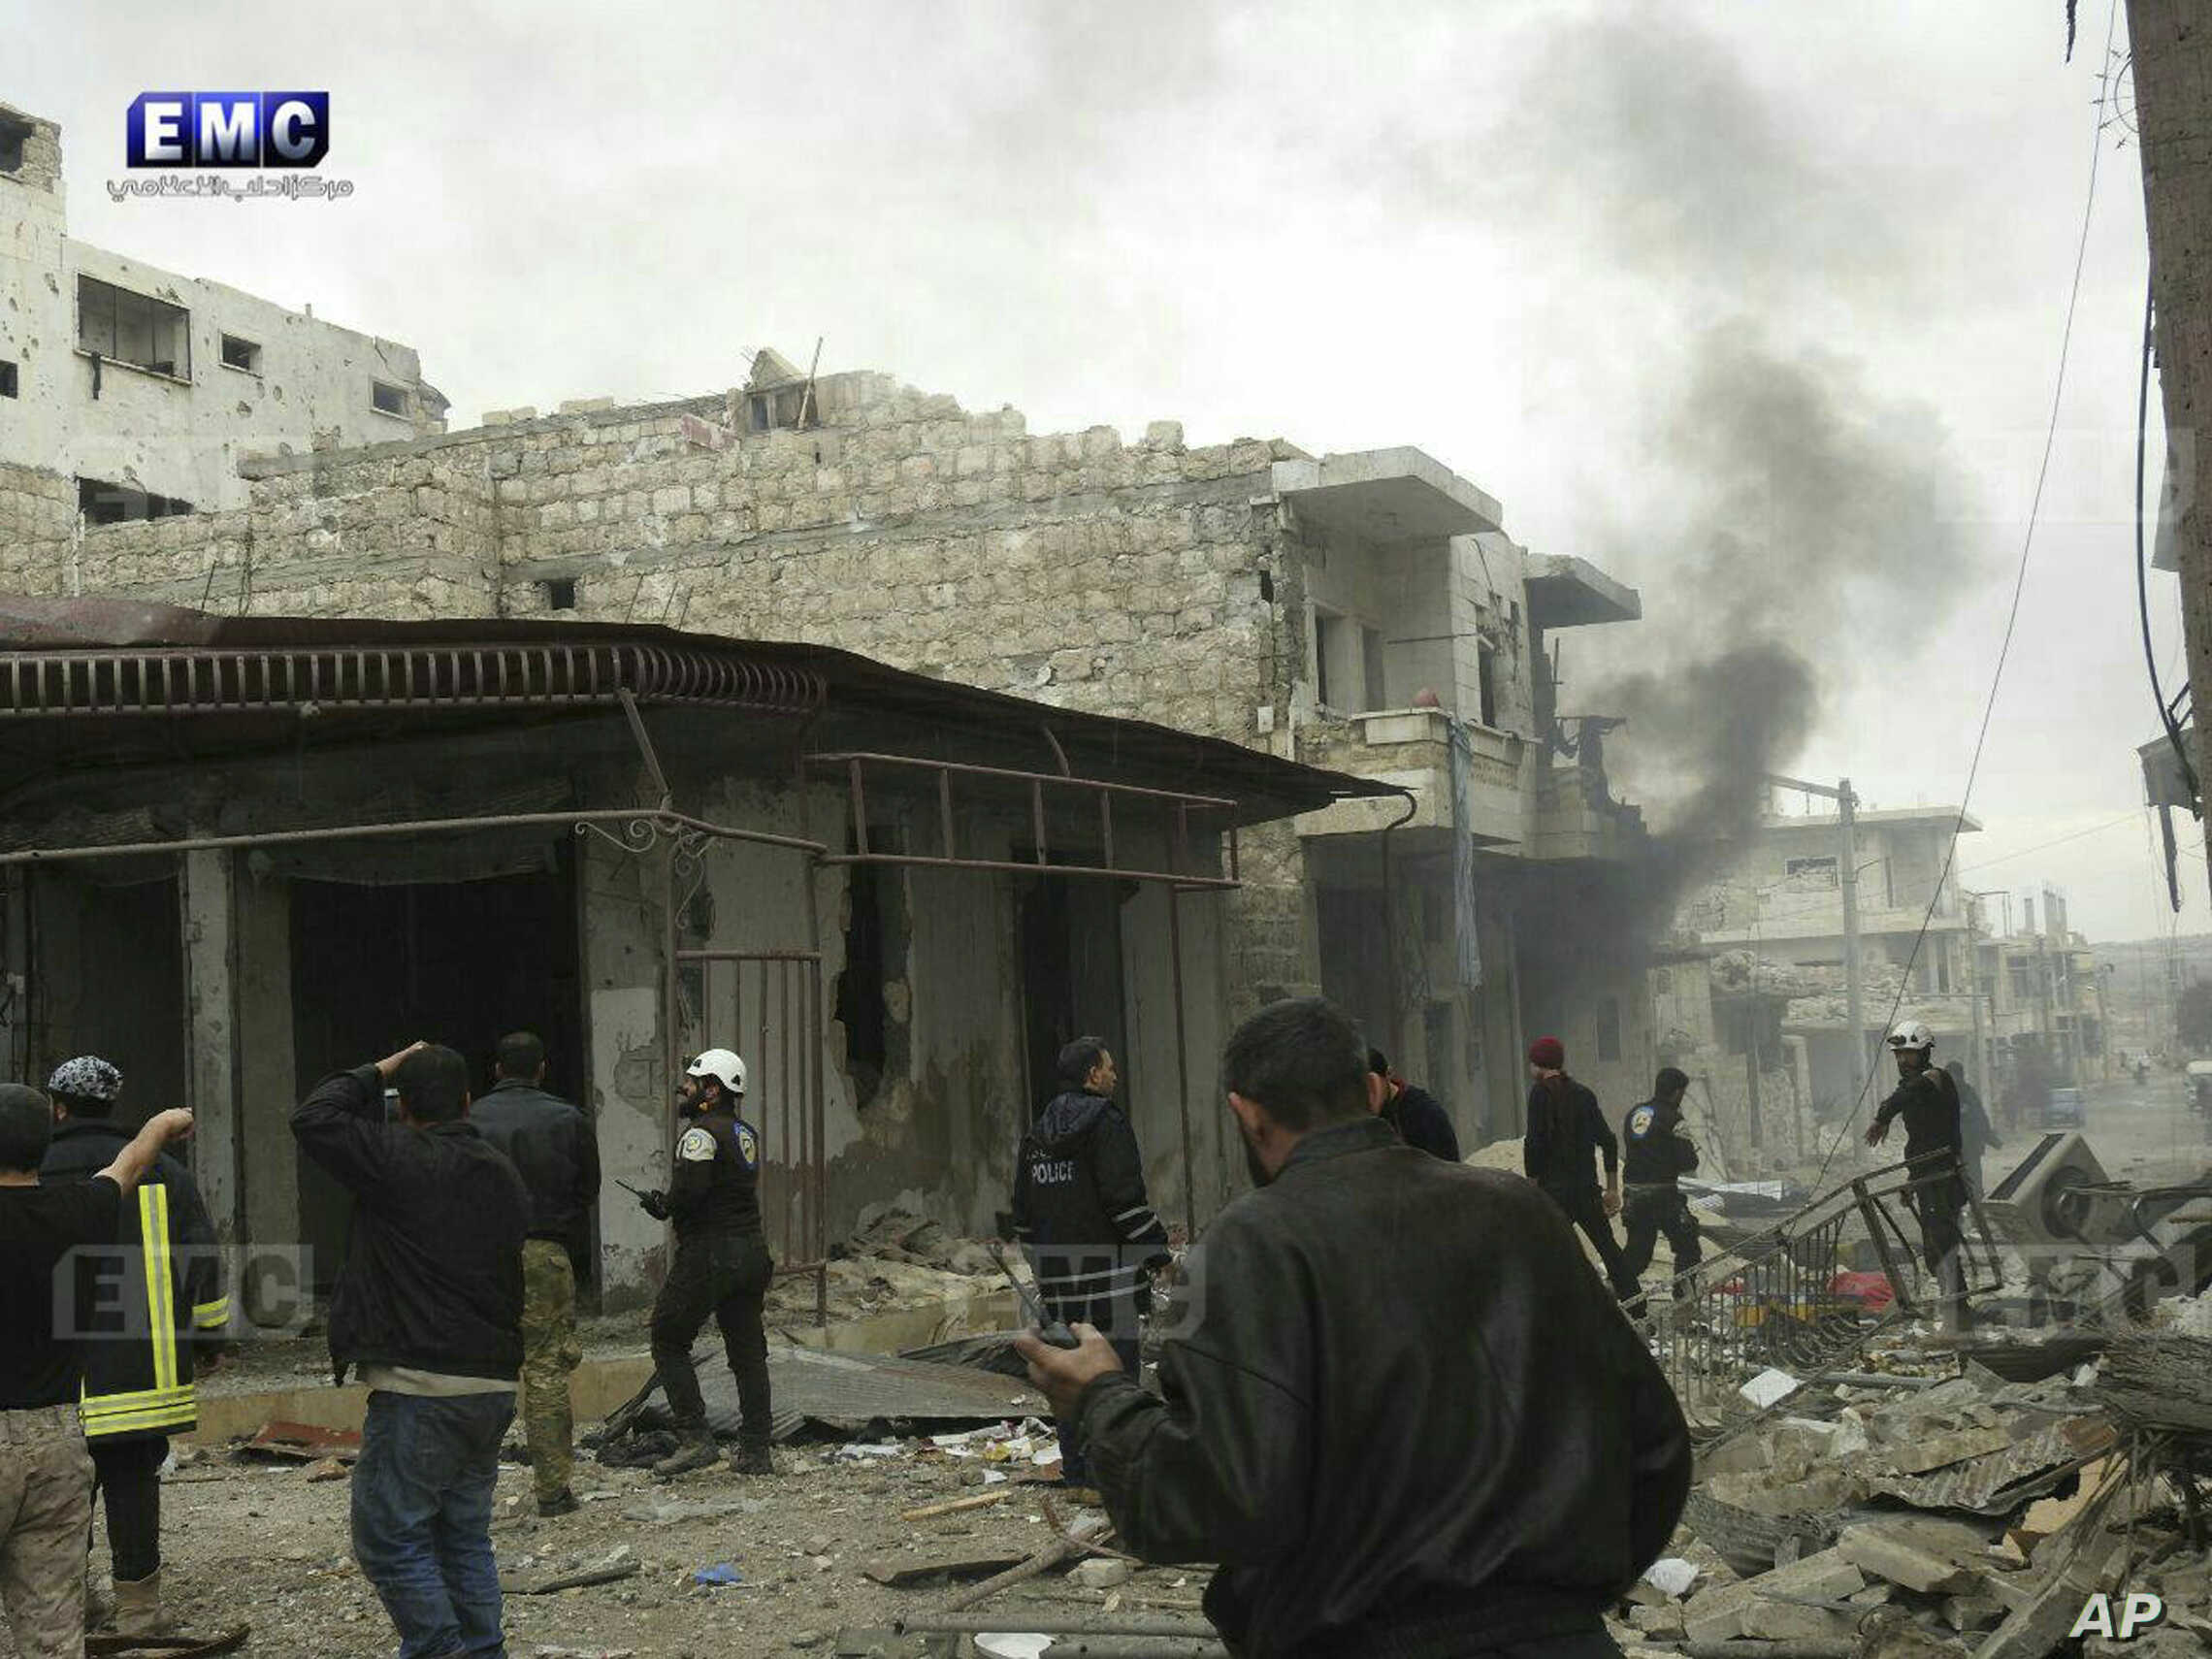 FILE - This photo provided by the Syrian anti-government activist group EMC shows members of the Syrian civil defense known as the White Helmets, gathering at a street which was attacked by Russian airstrikes, in Maarat al-Nuaman town, southern Idlib...